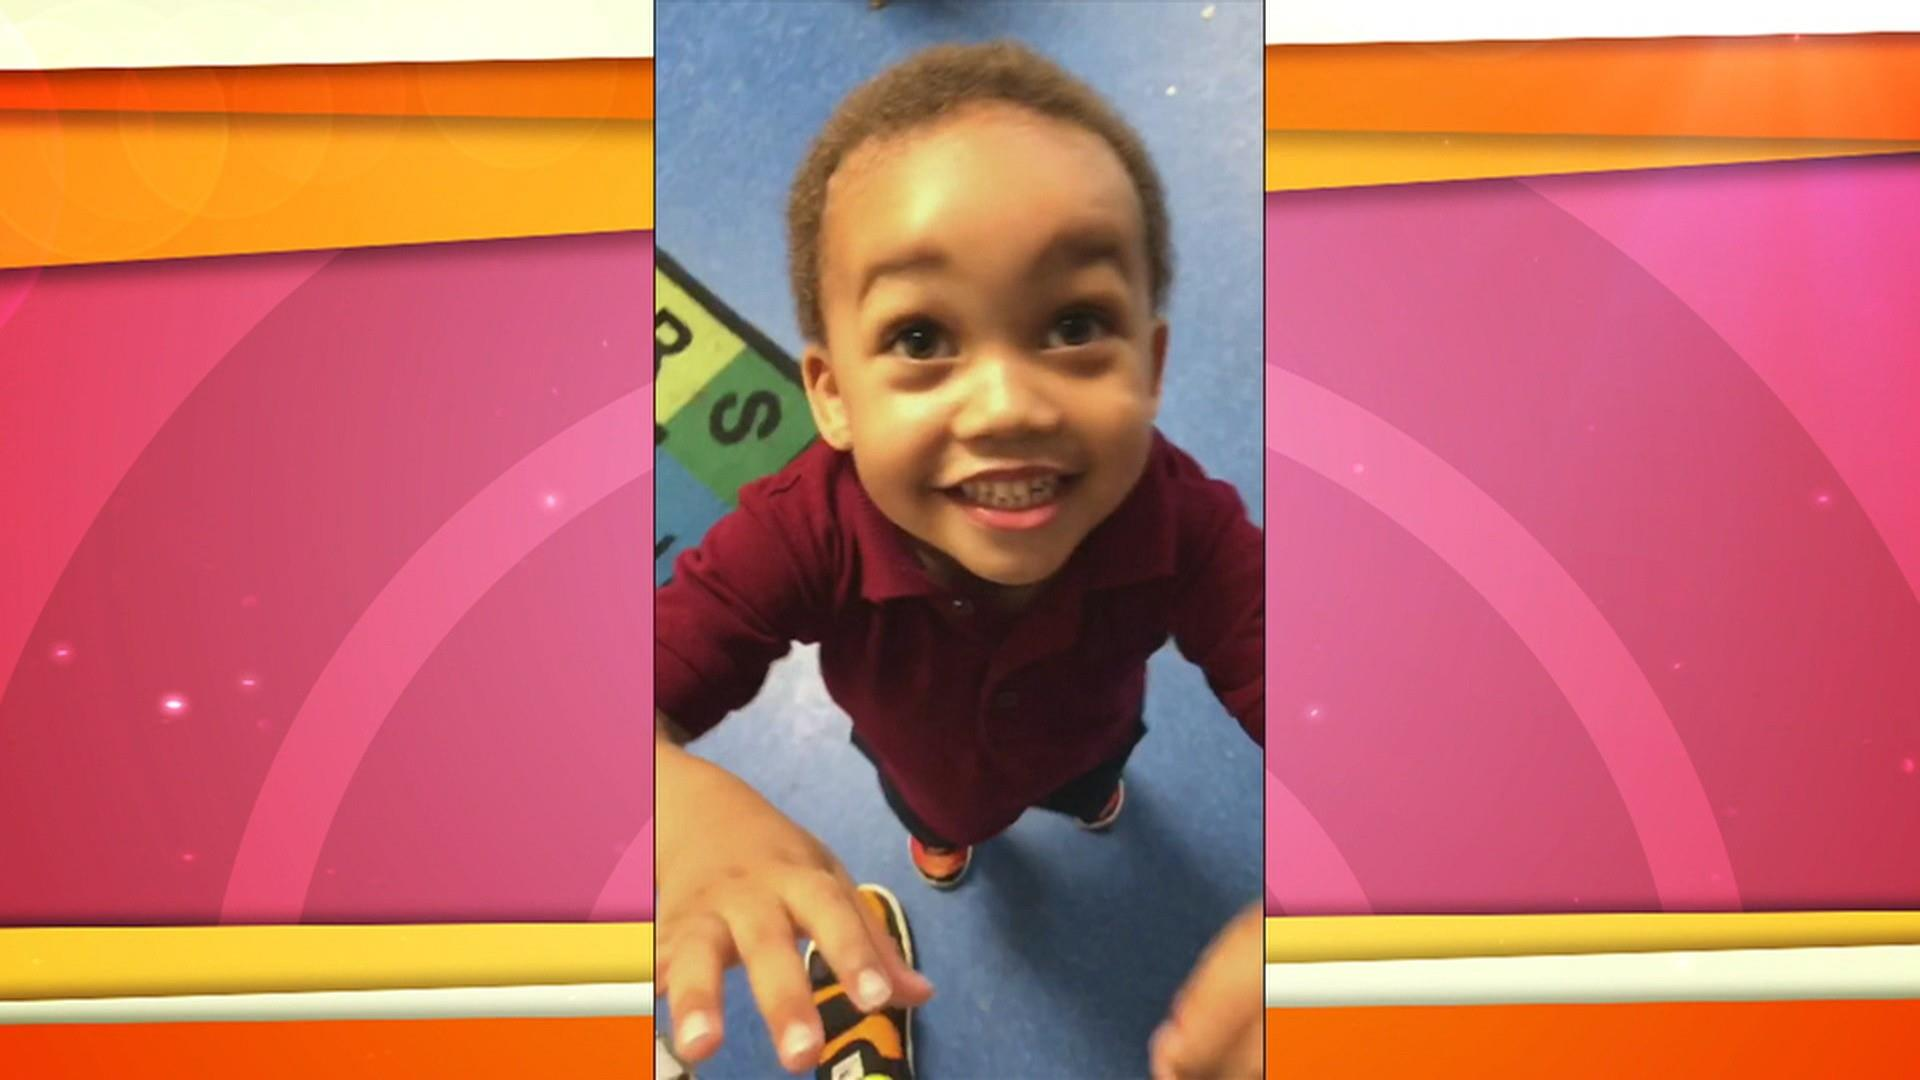 'Daddy!' A preschooler is always overjoyed to see Dad